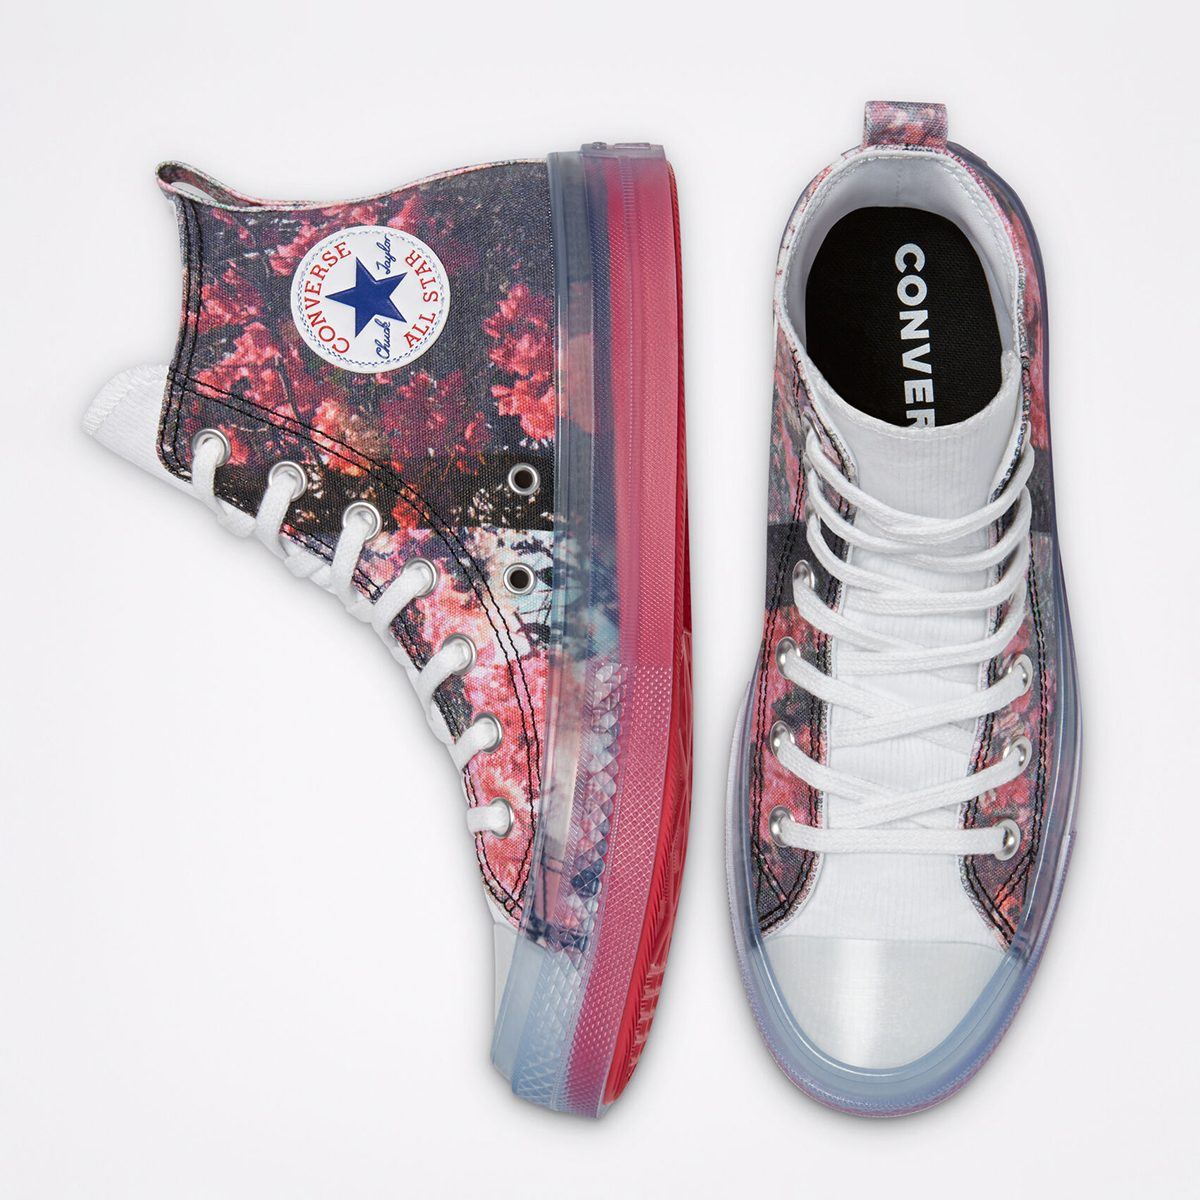 Shaniqwa Jarvis' Floral Print Converse Chuck Taylor CX Arrives August 13th